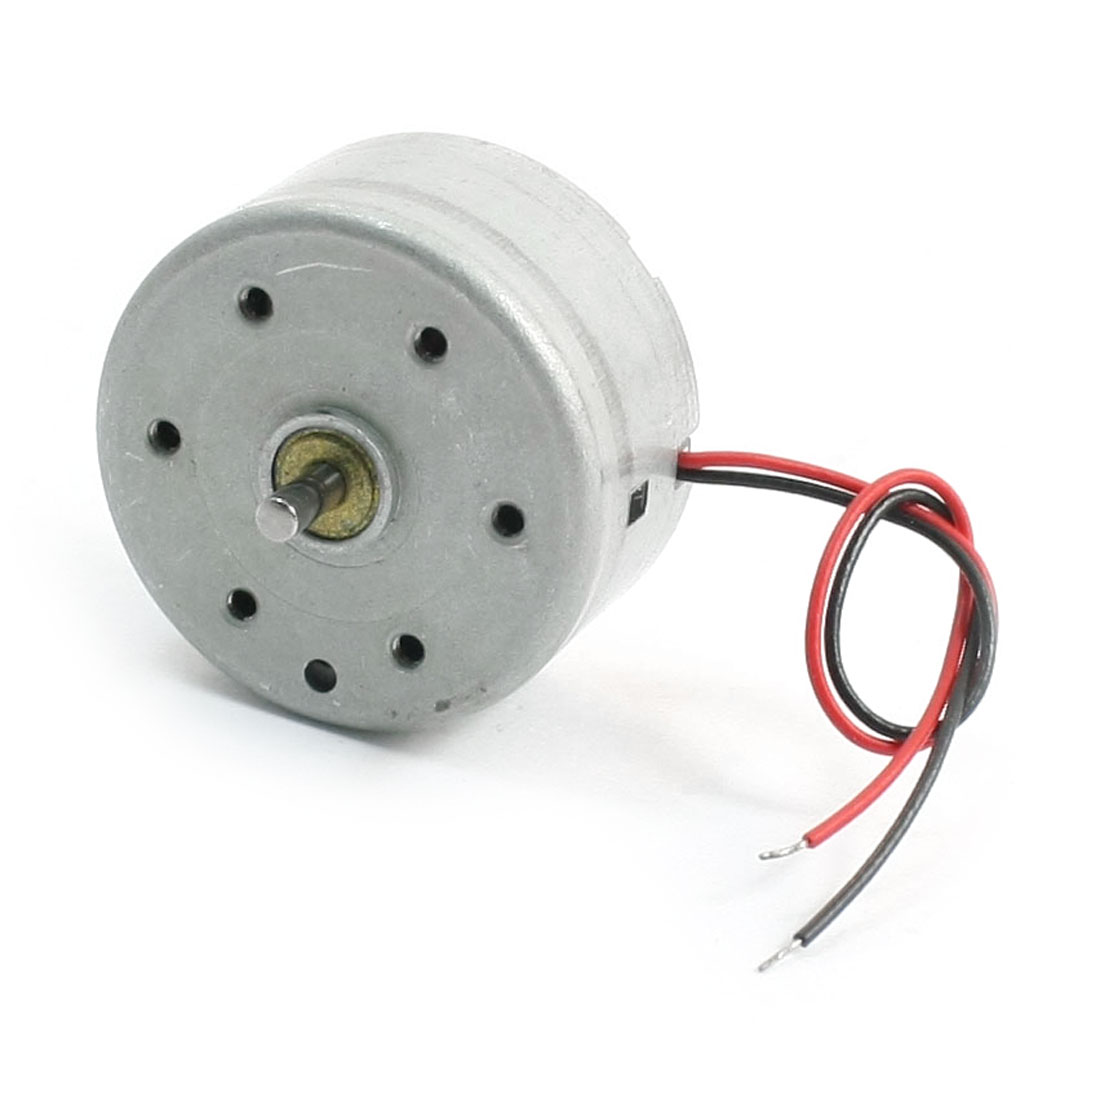 DC 6V 10000 RPM 24mm Diameter Wired Mini Magnetic Gear Motor